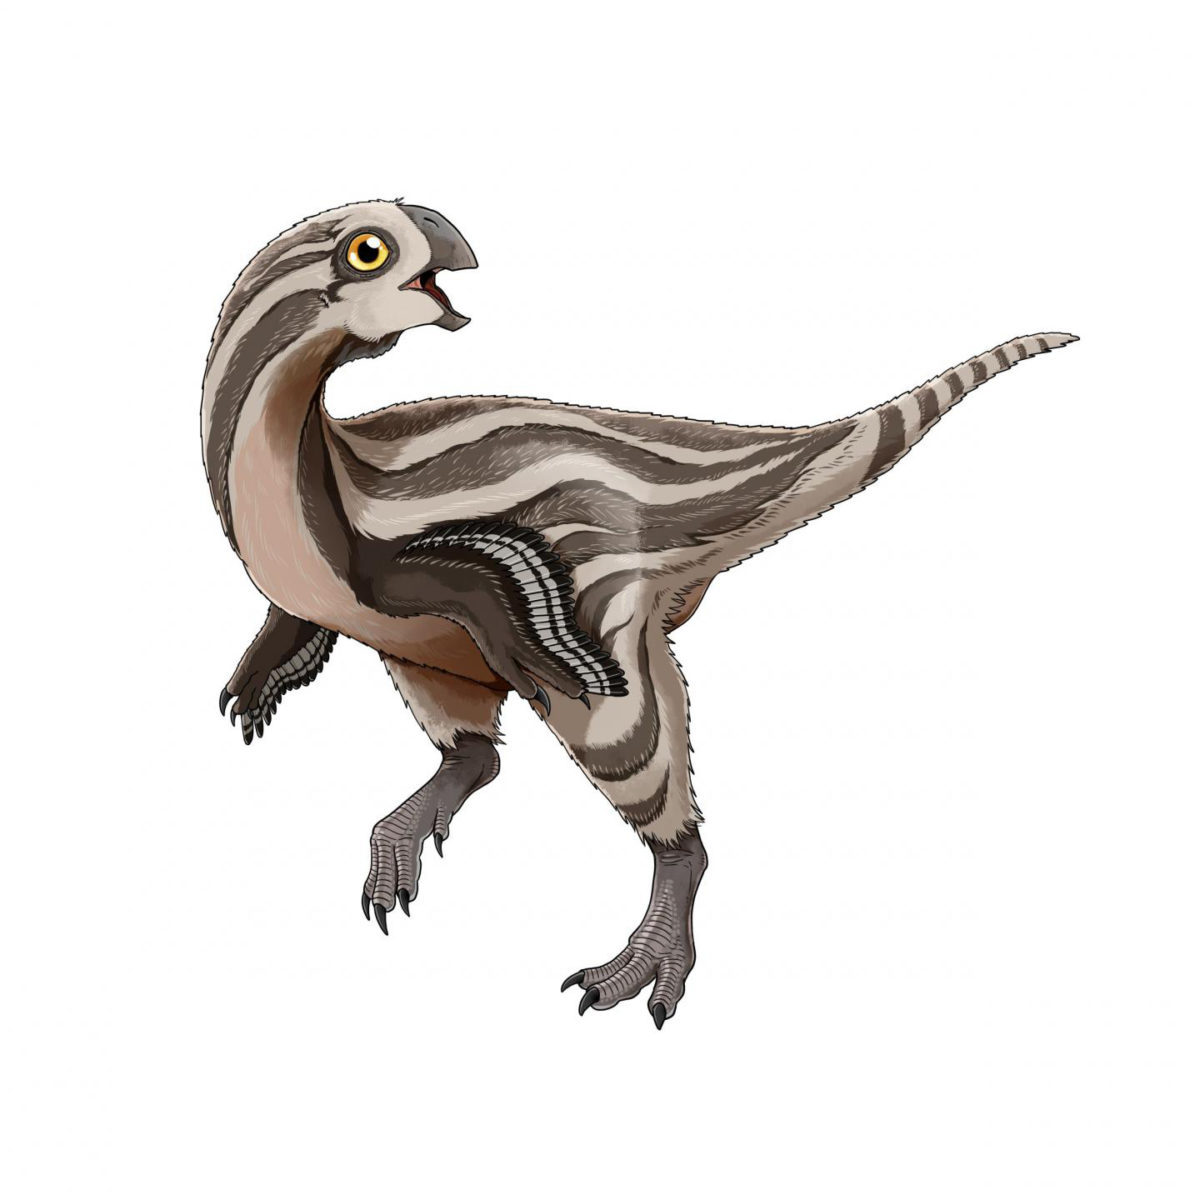 This is a Gobiraptor reconstruction. Credit: Do Yoon Kim (2019)